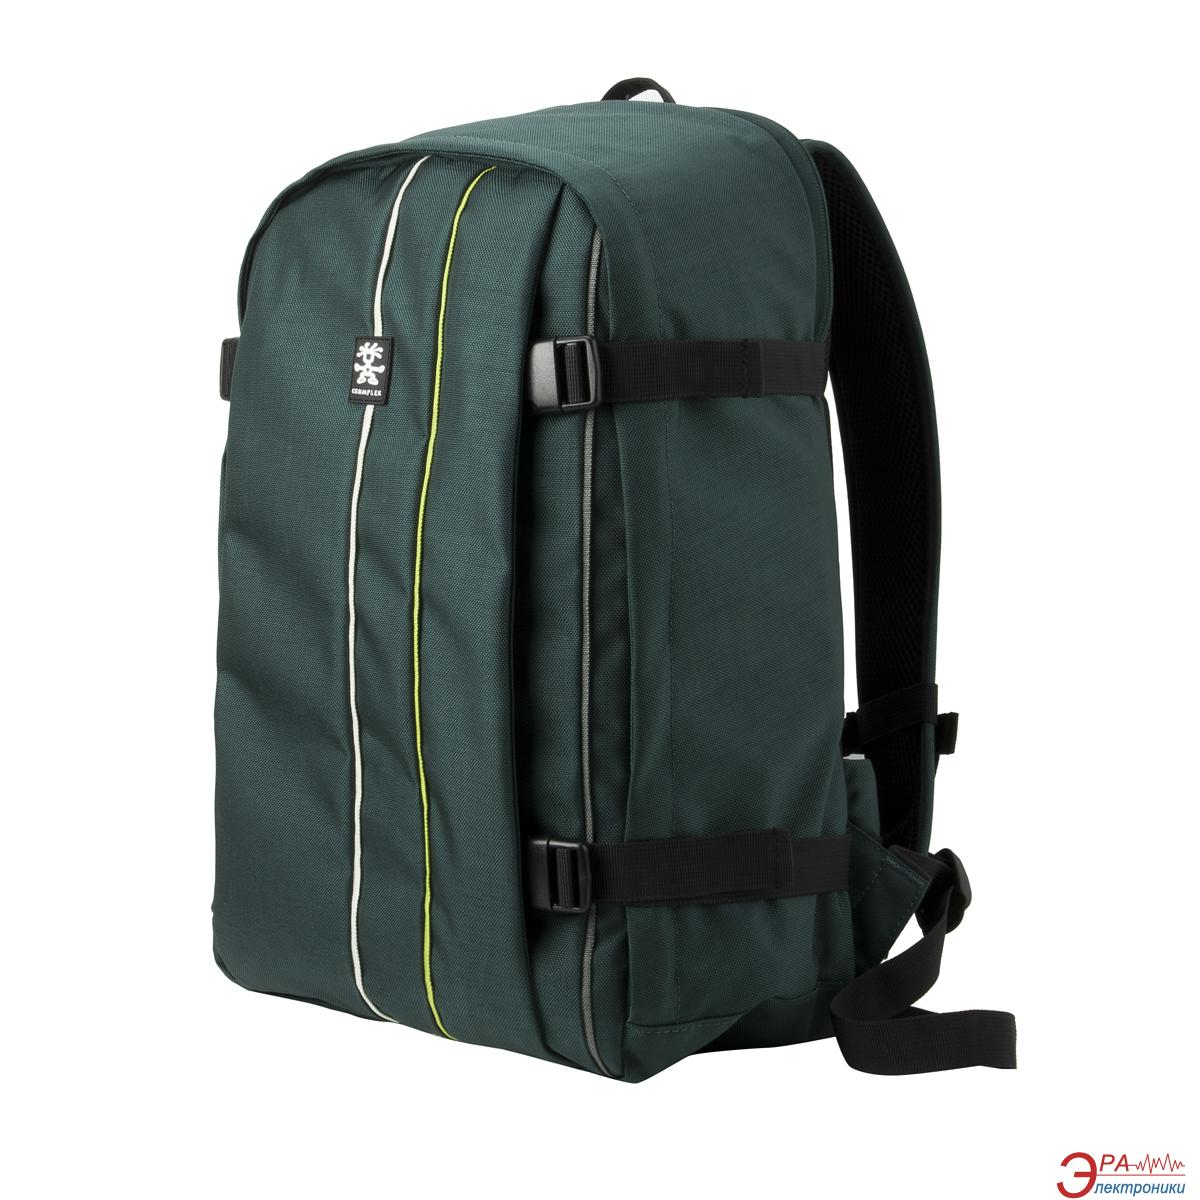 Рюкзак для ноутбука Crumpler Jackpack Full Photo Backpack (petrol/ green yellow) (JPFBP-003)